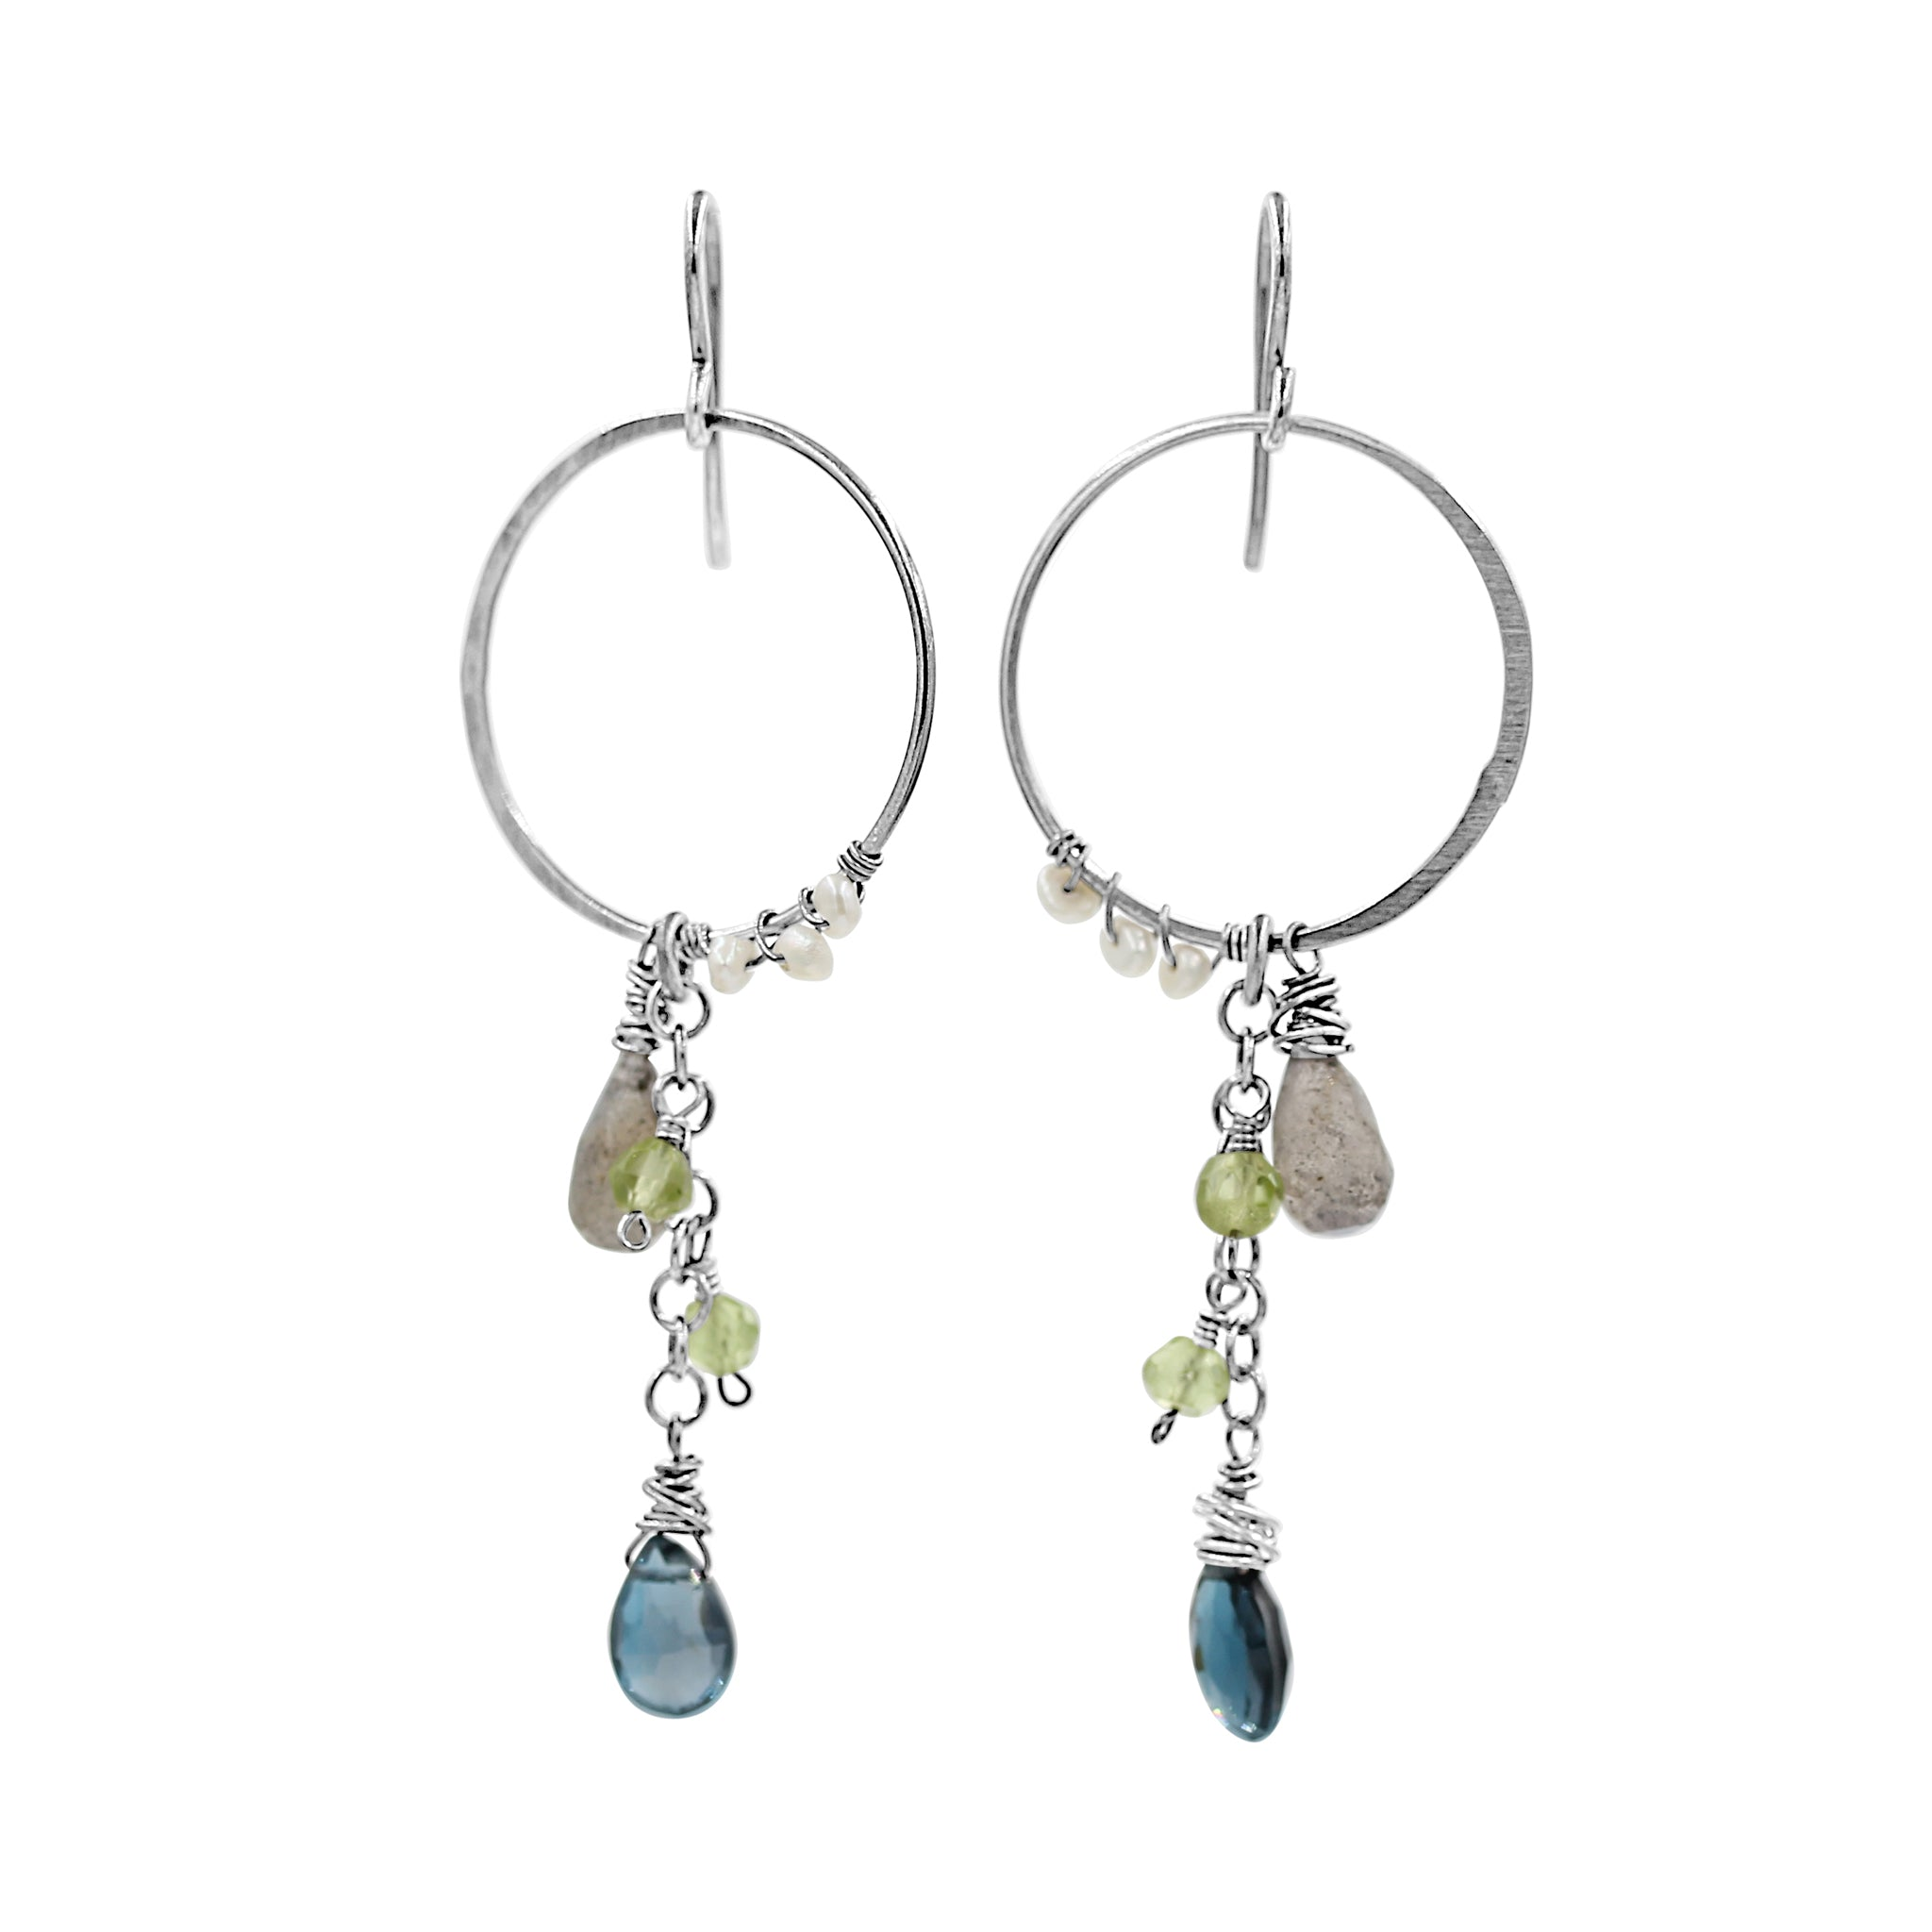 Gorgeous You Earrings - Sati Gems Hawaii Healing Crystal Gemstone Jewelry